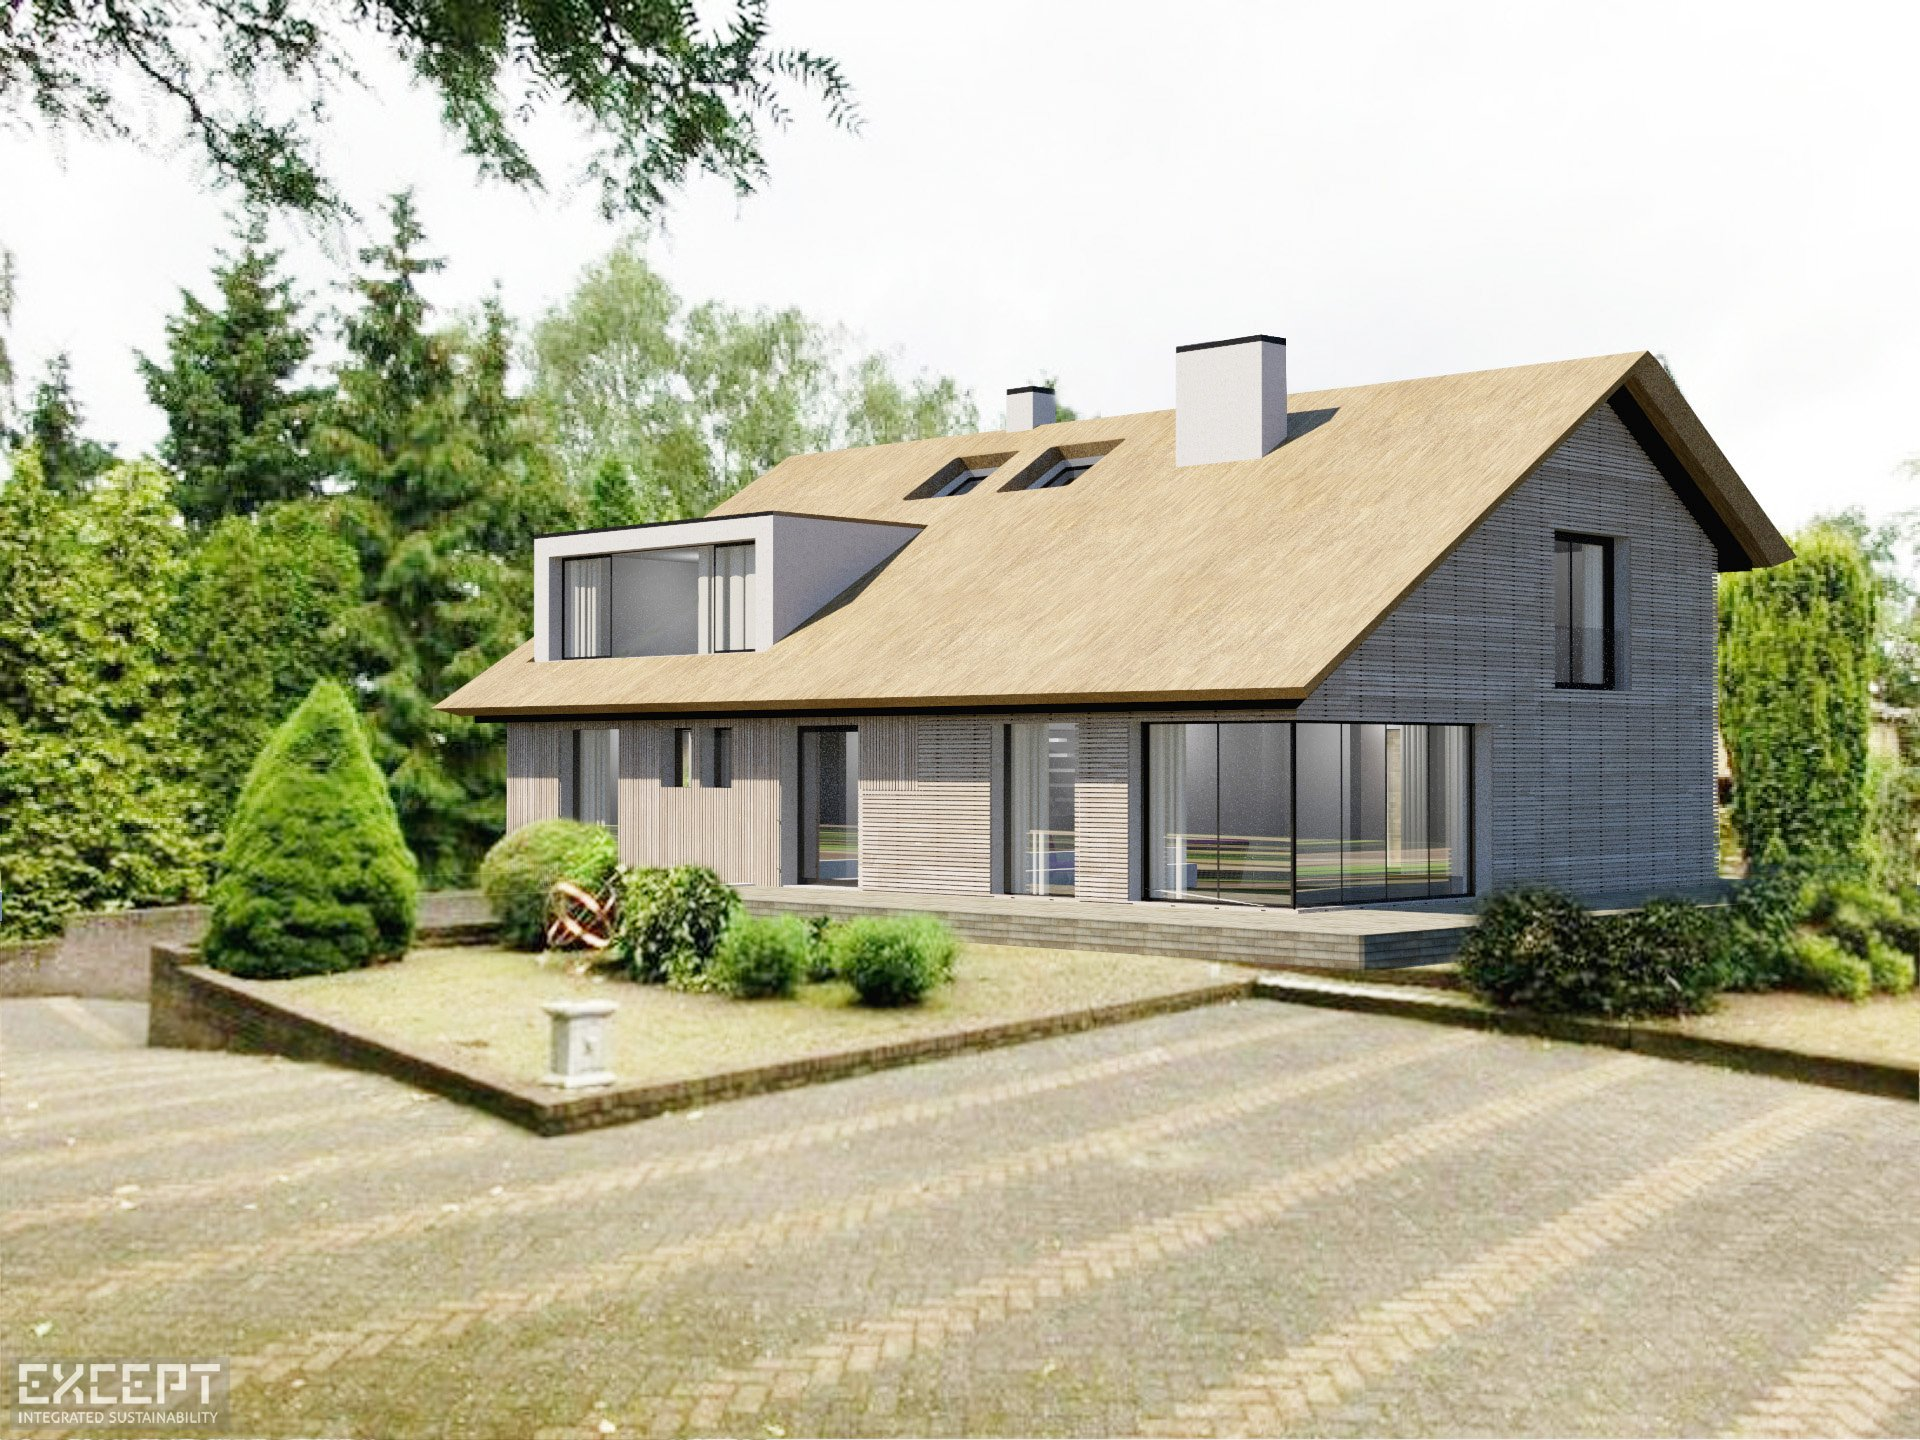 Elst house - Impression after renovation